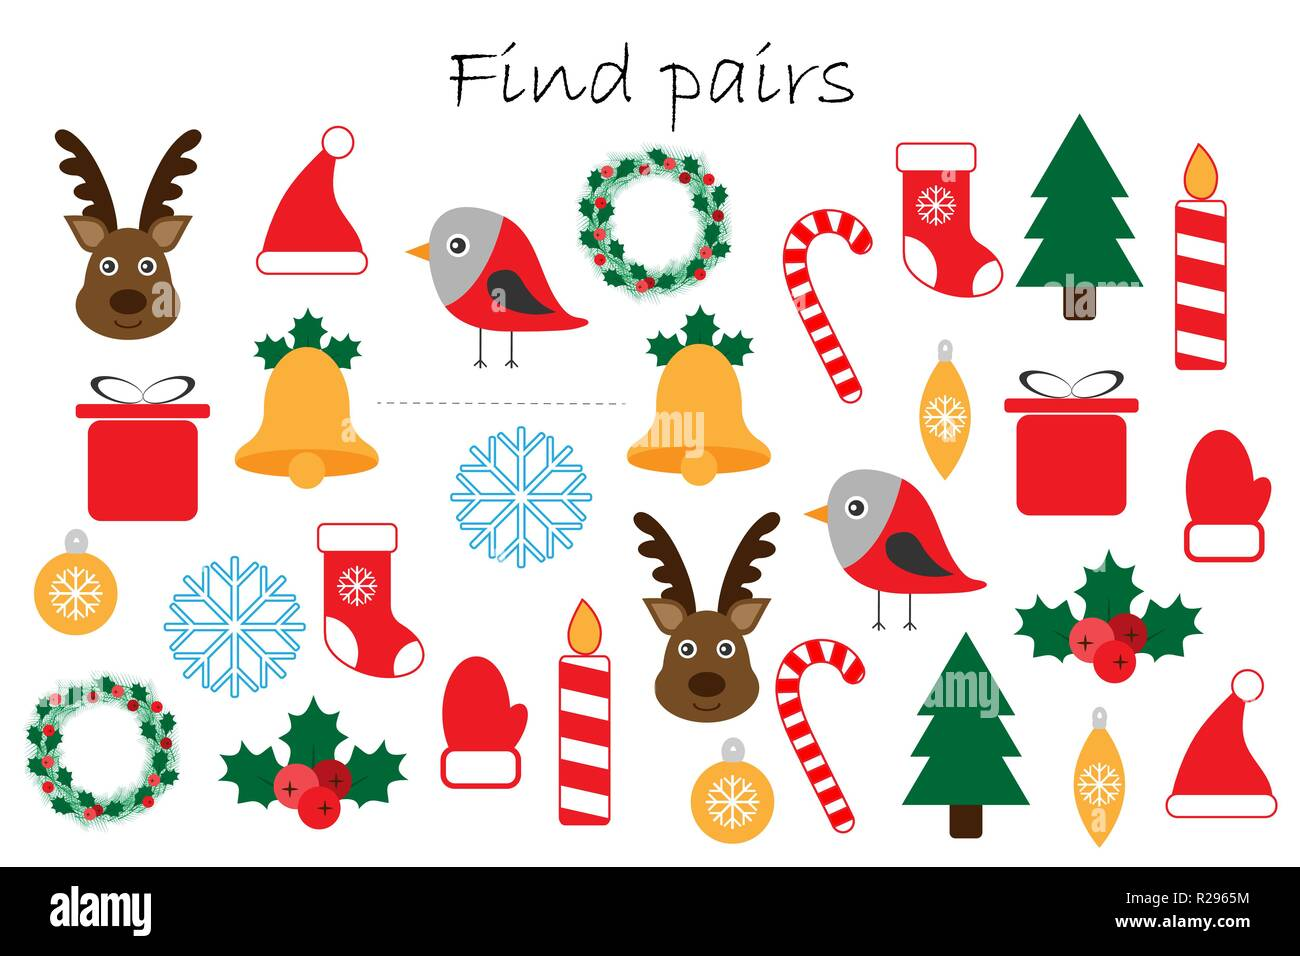 Christmas Preschool.Find Pairs Of Identical Pictures Fun Education Game With